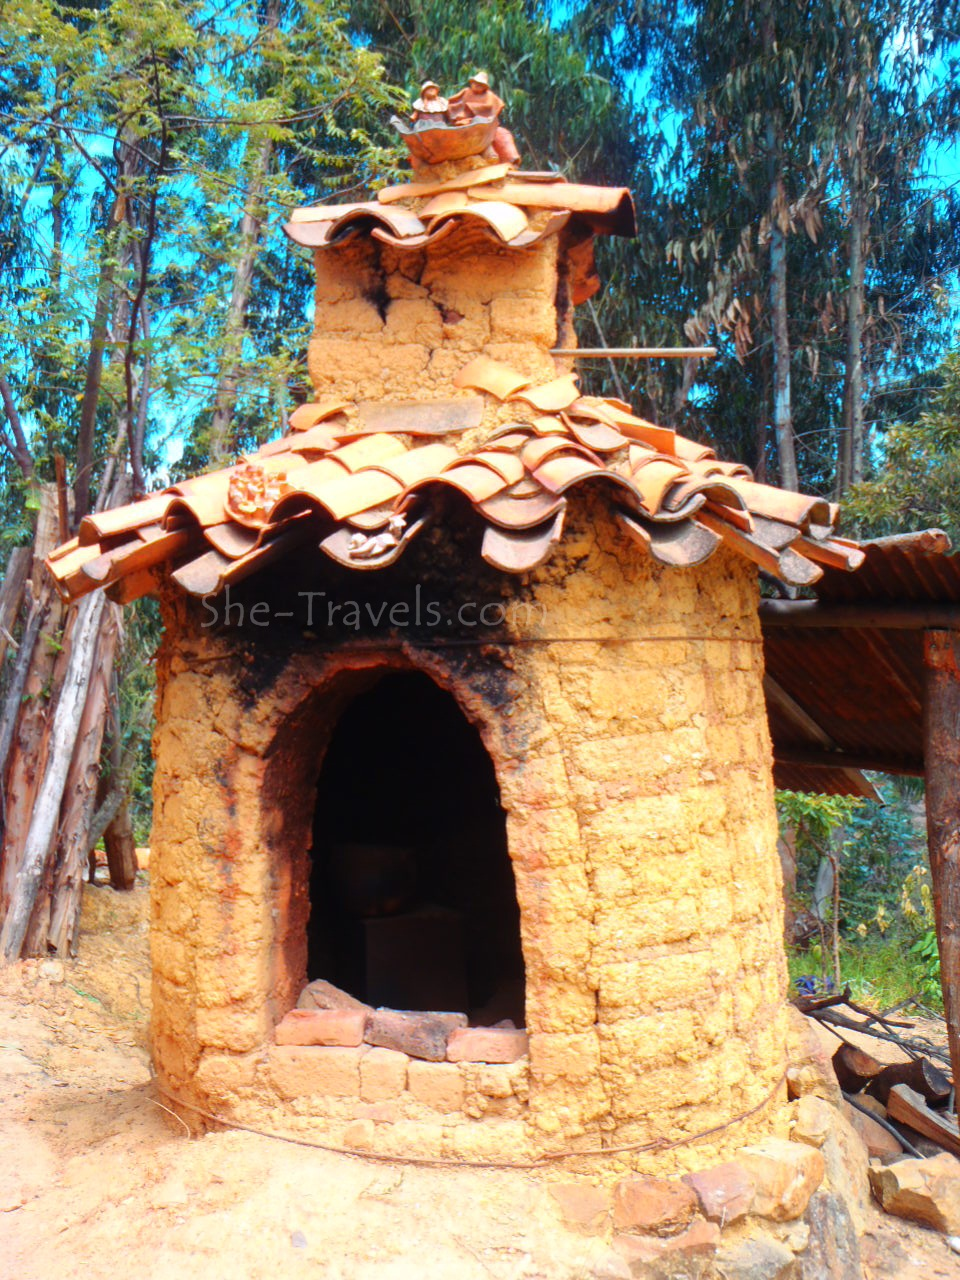 ©She-Travels.com - Clay oven to bake her art